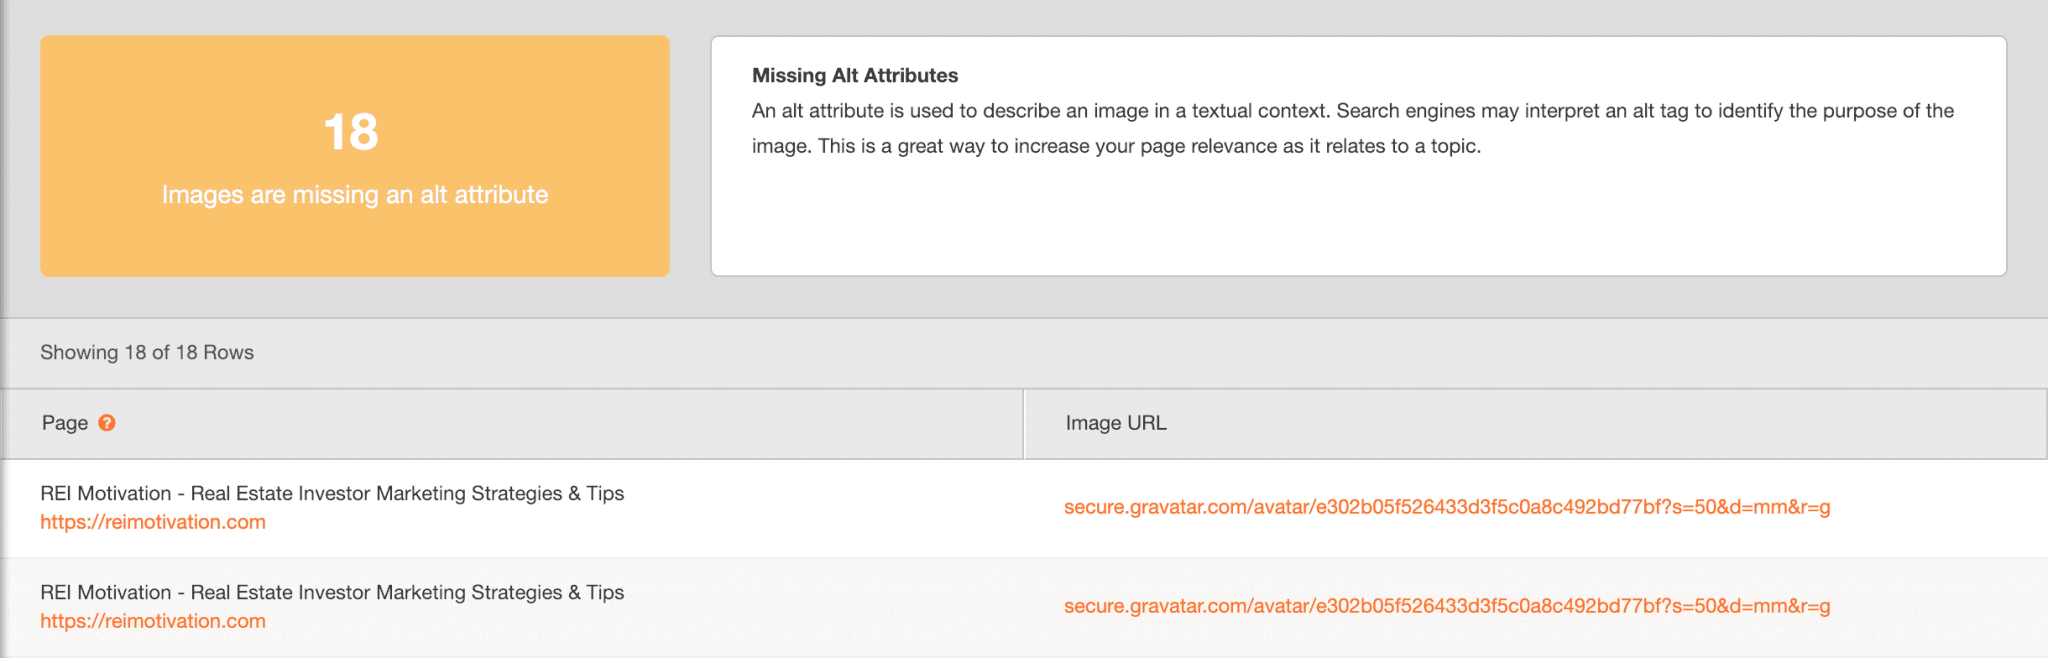 Agency Analytics Issue Report - SEO Audit